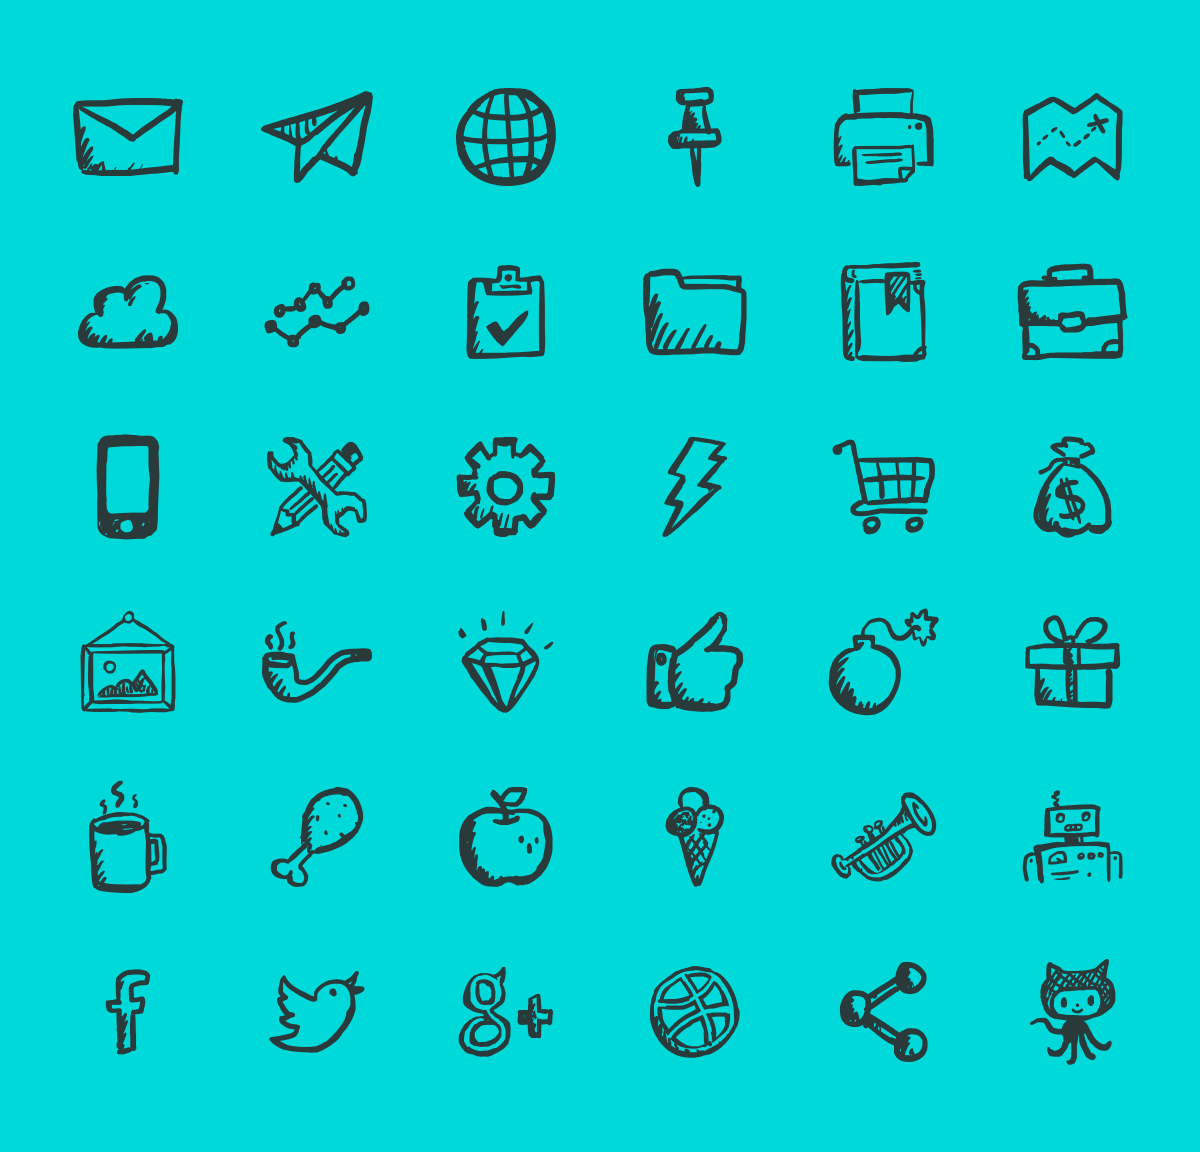 Free Hand-drawn Outline Icons Available in Ai, EPS, PDF & PSD (36 Icons)